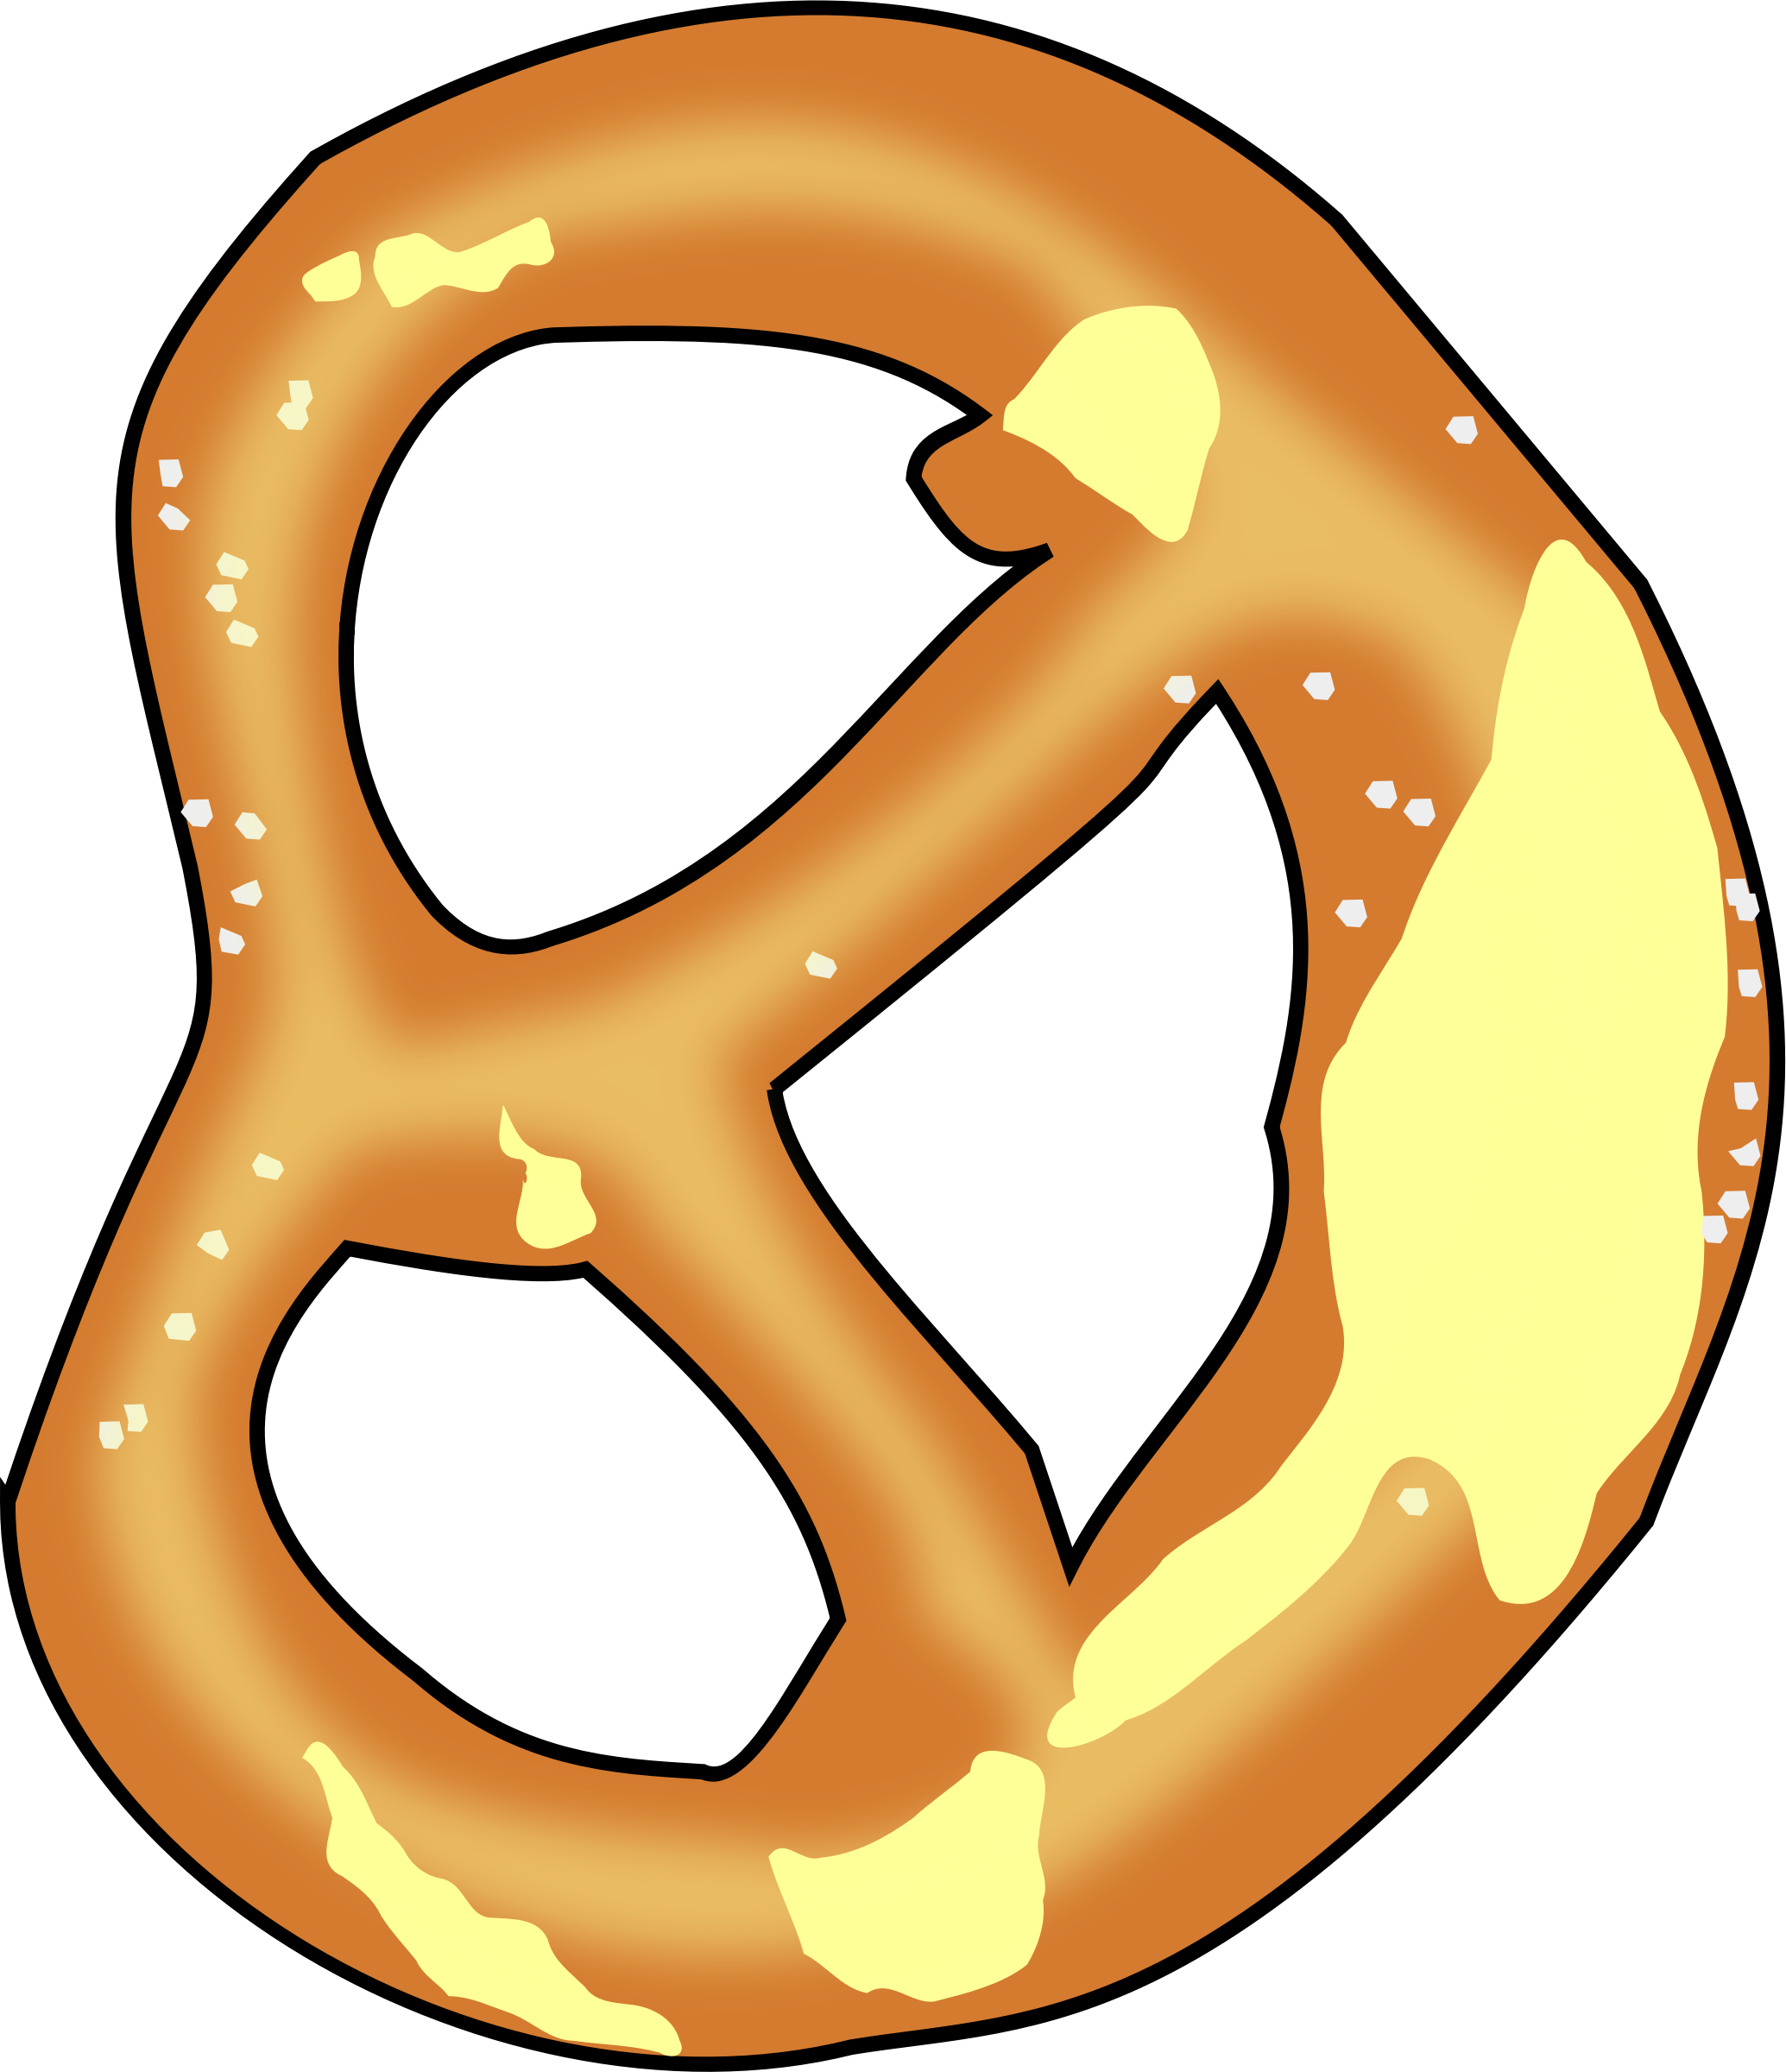 Bavarian pretzel by arking